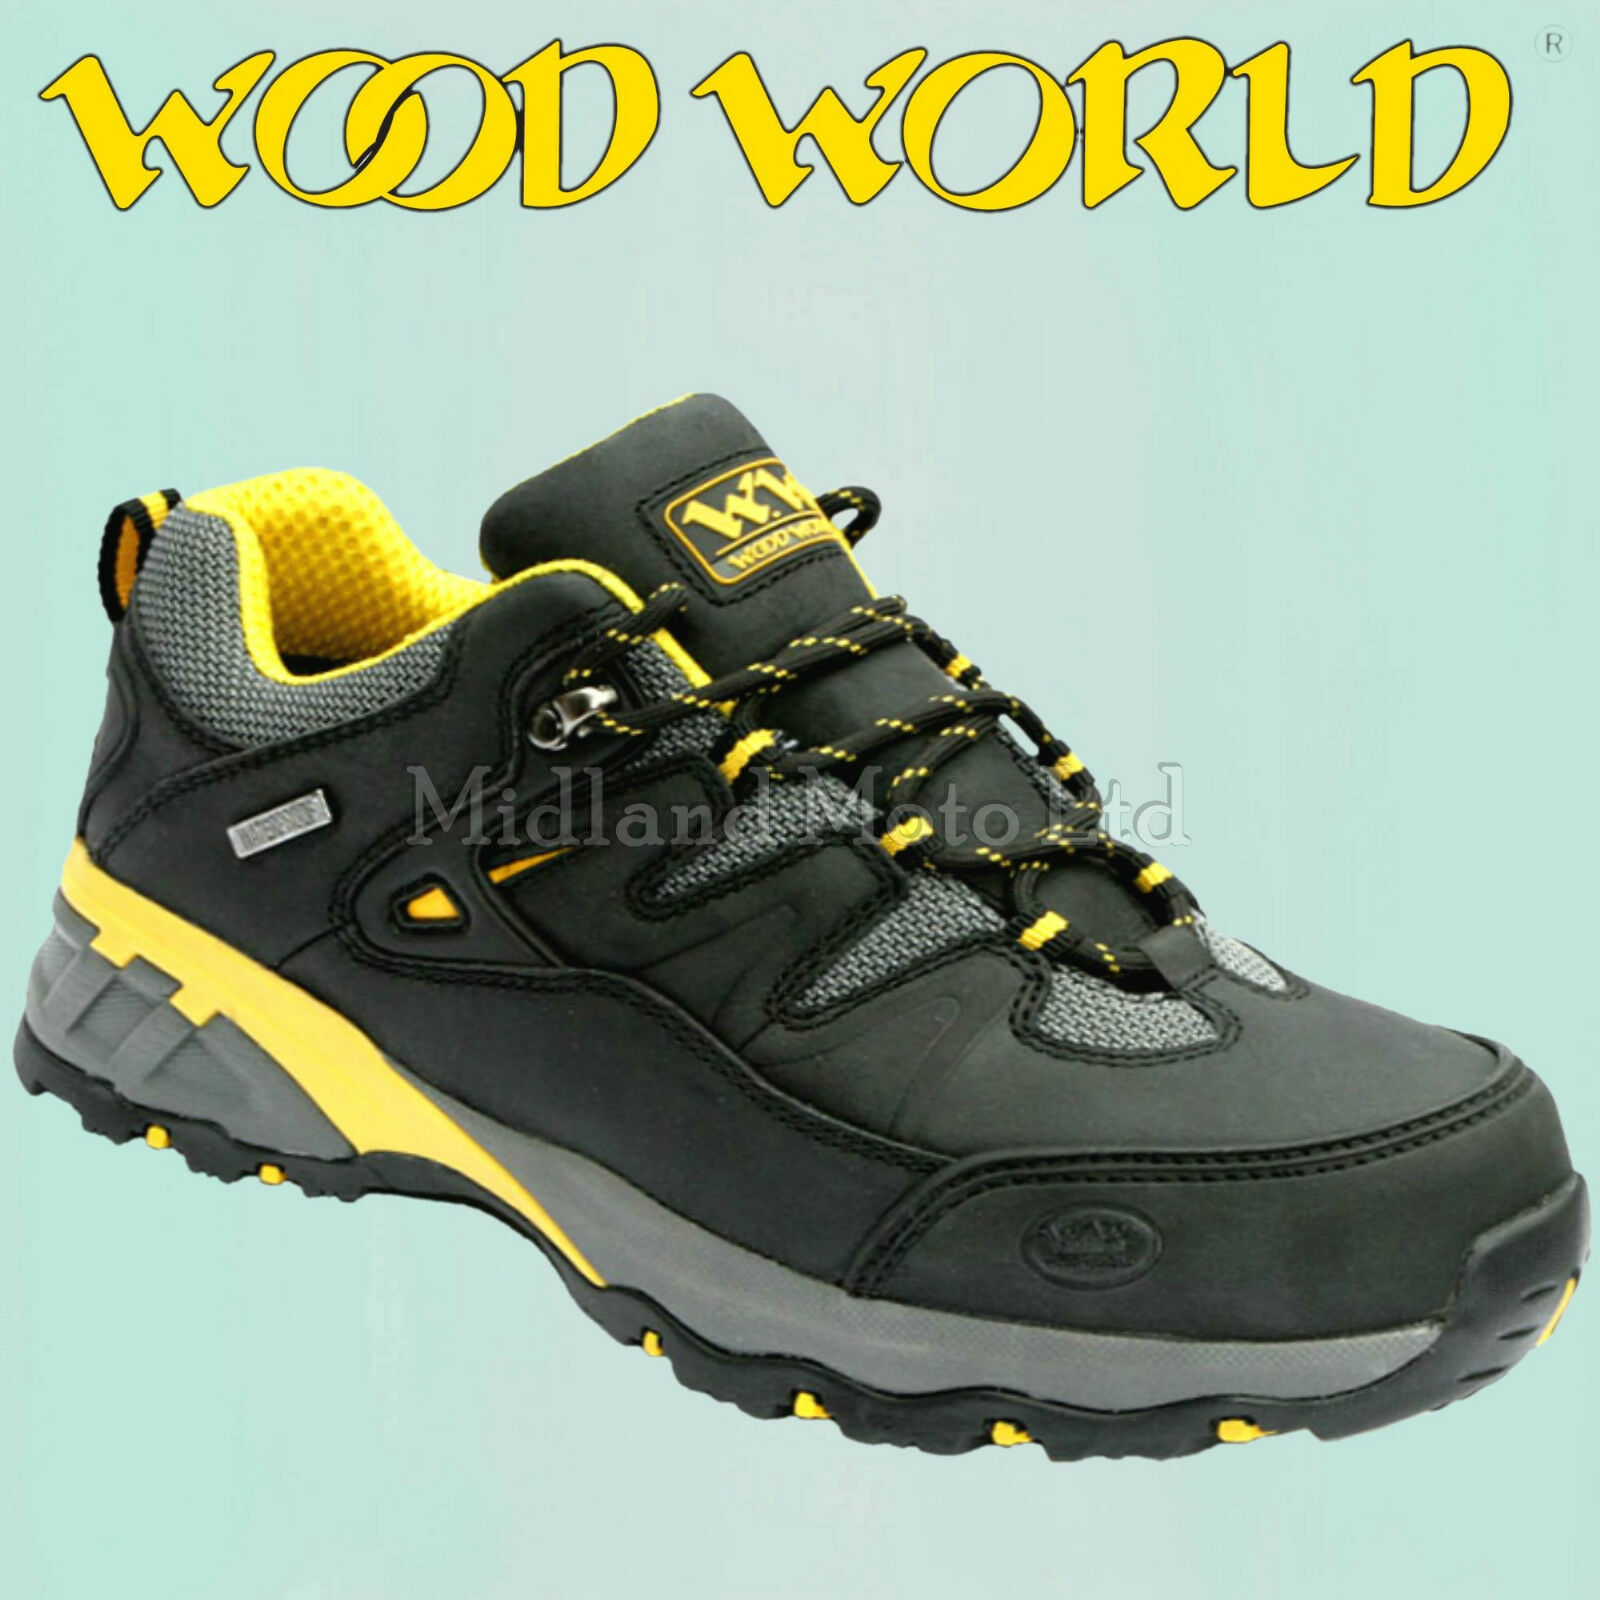 Wood World Waterproof  Steel Toe Cap Trainers, Safety Schuhes Woodworld. WW7